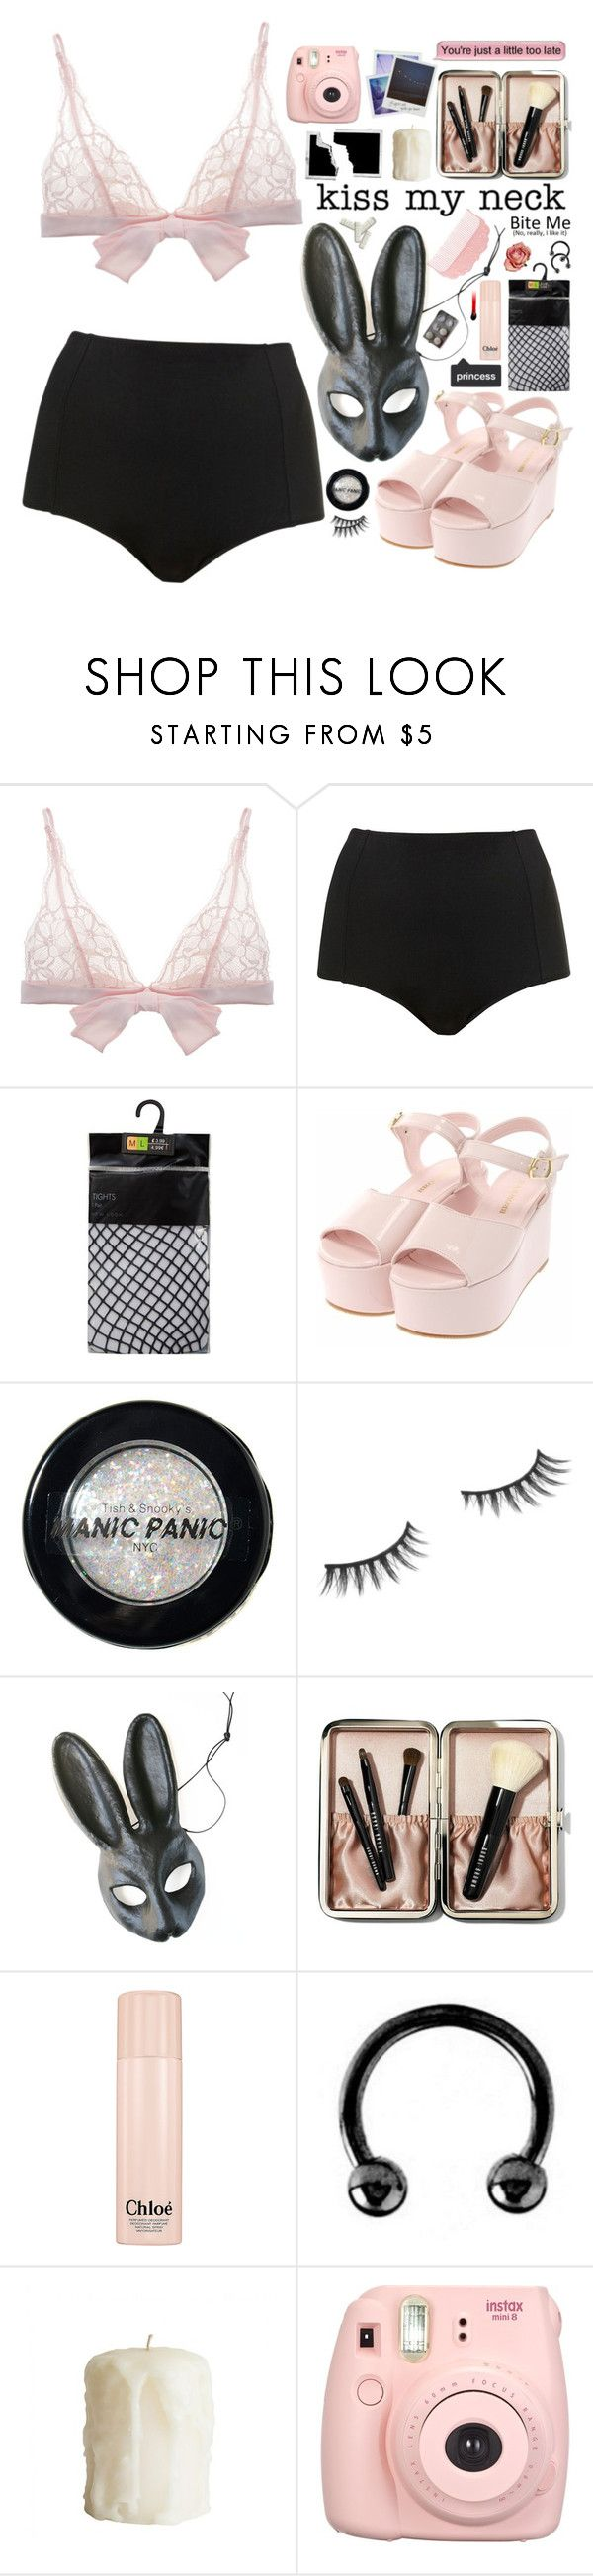 """Everyone but you"" by feed-the-skulls ❤ liked on Polyvore featuring Fleur of England, Topshop, Manic Panic NYC, Benefit, Bobbi Brown Cosmetics, Chloé, Urbiana, Polaroid and Fujifilm"